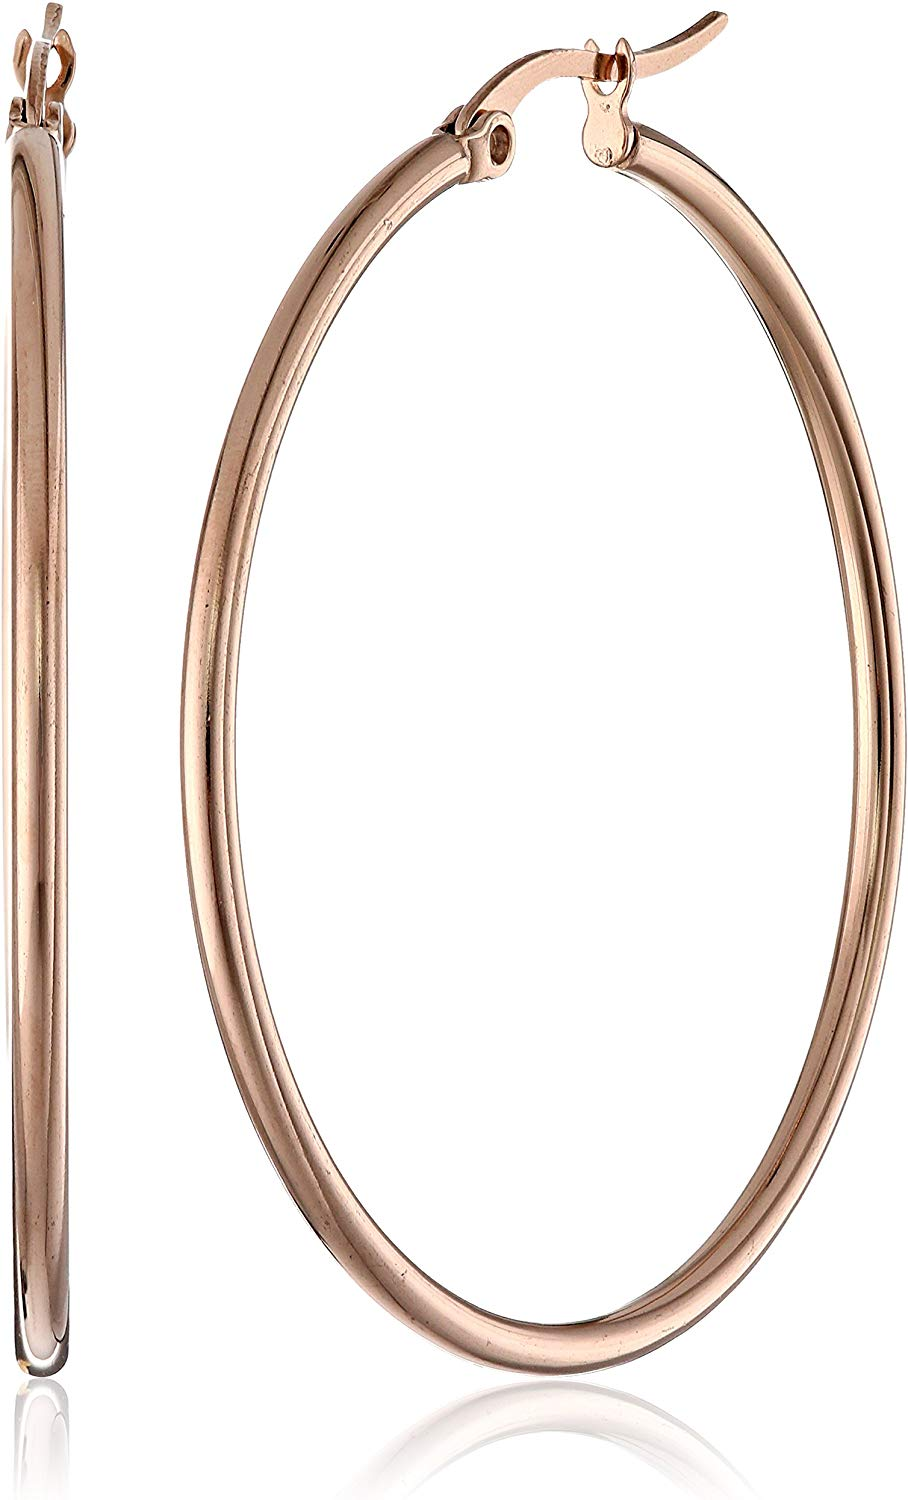 Amazon Essentials Plated Stainless Steel Rounded Tube Hoop Earrings